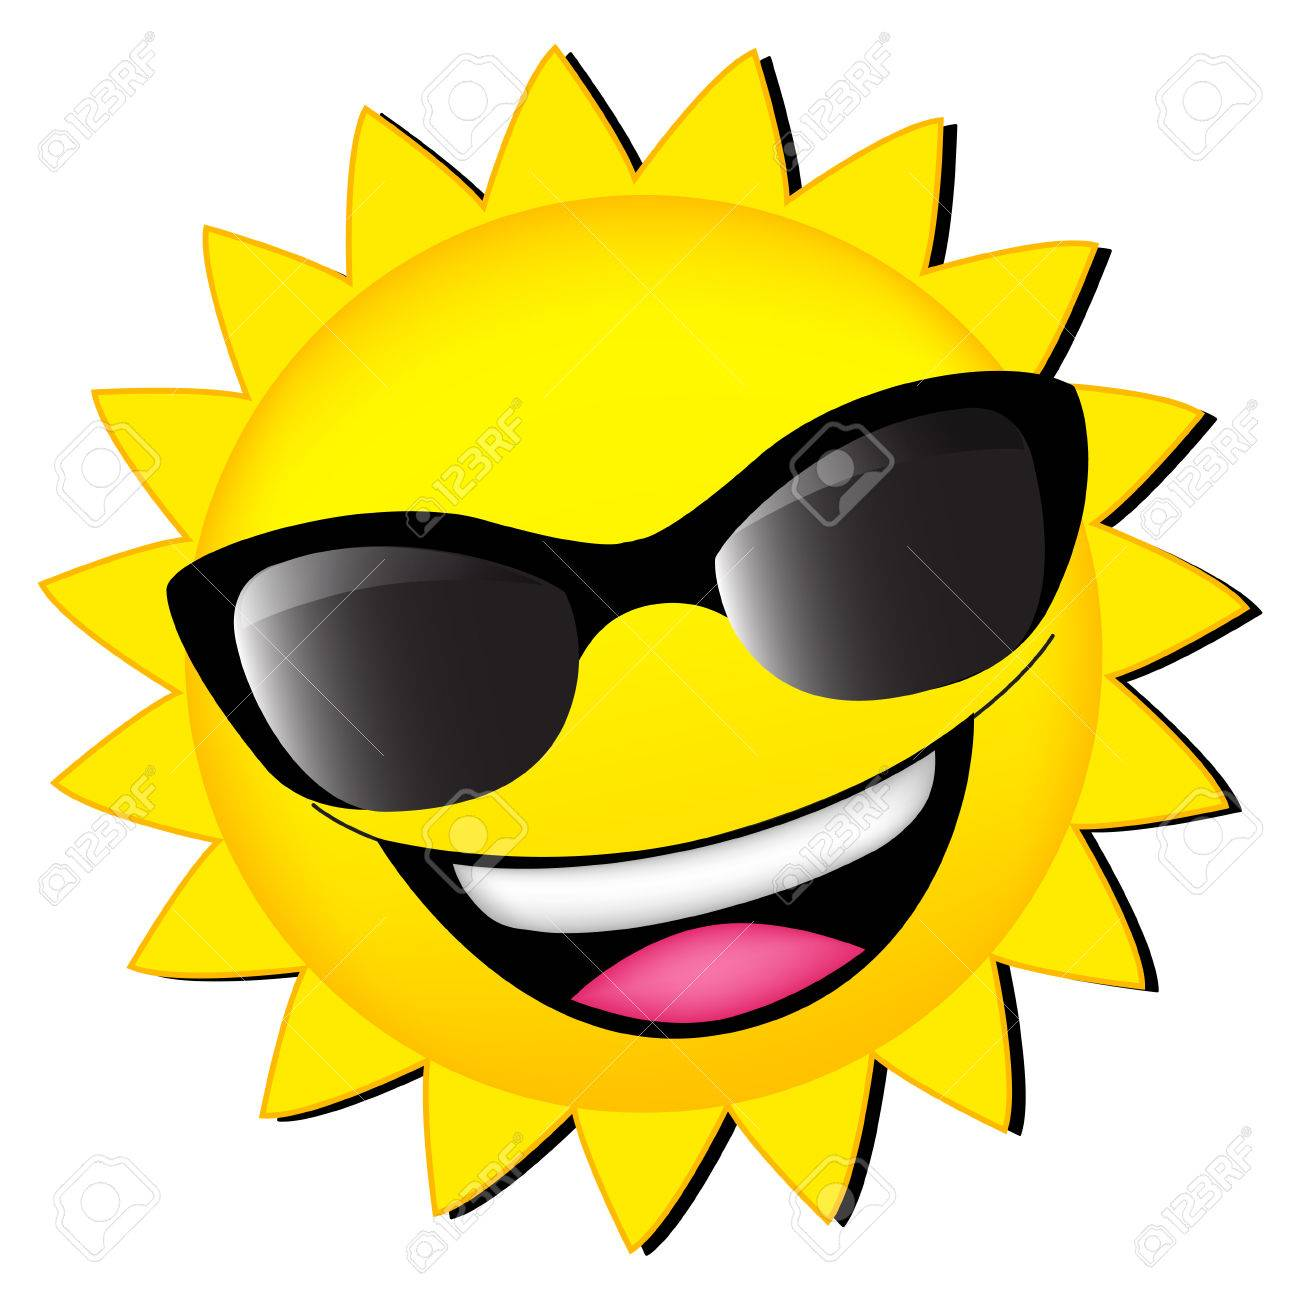 happy sun wearing sunglasses clipart isolated on white royalty free rh 123rf com smiling sun with sunglasses clipart sun wearing sunglasses clipart